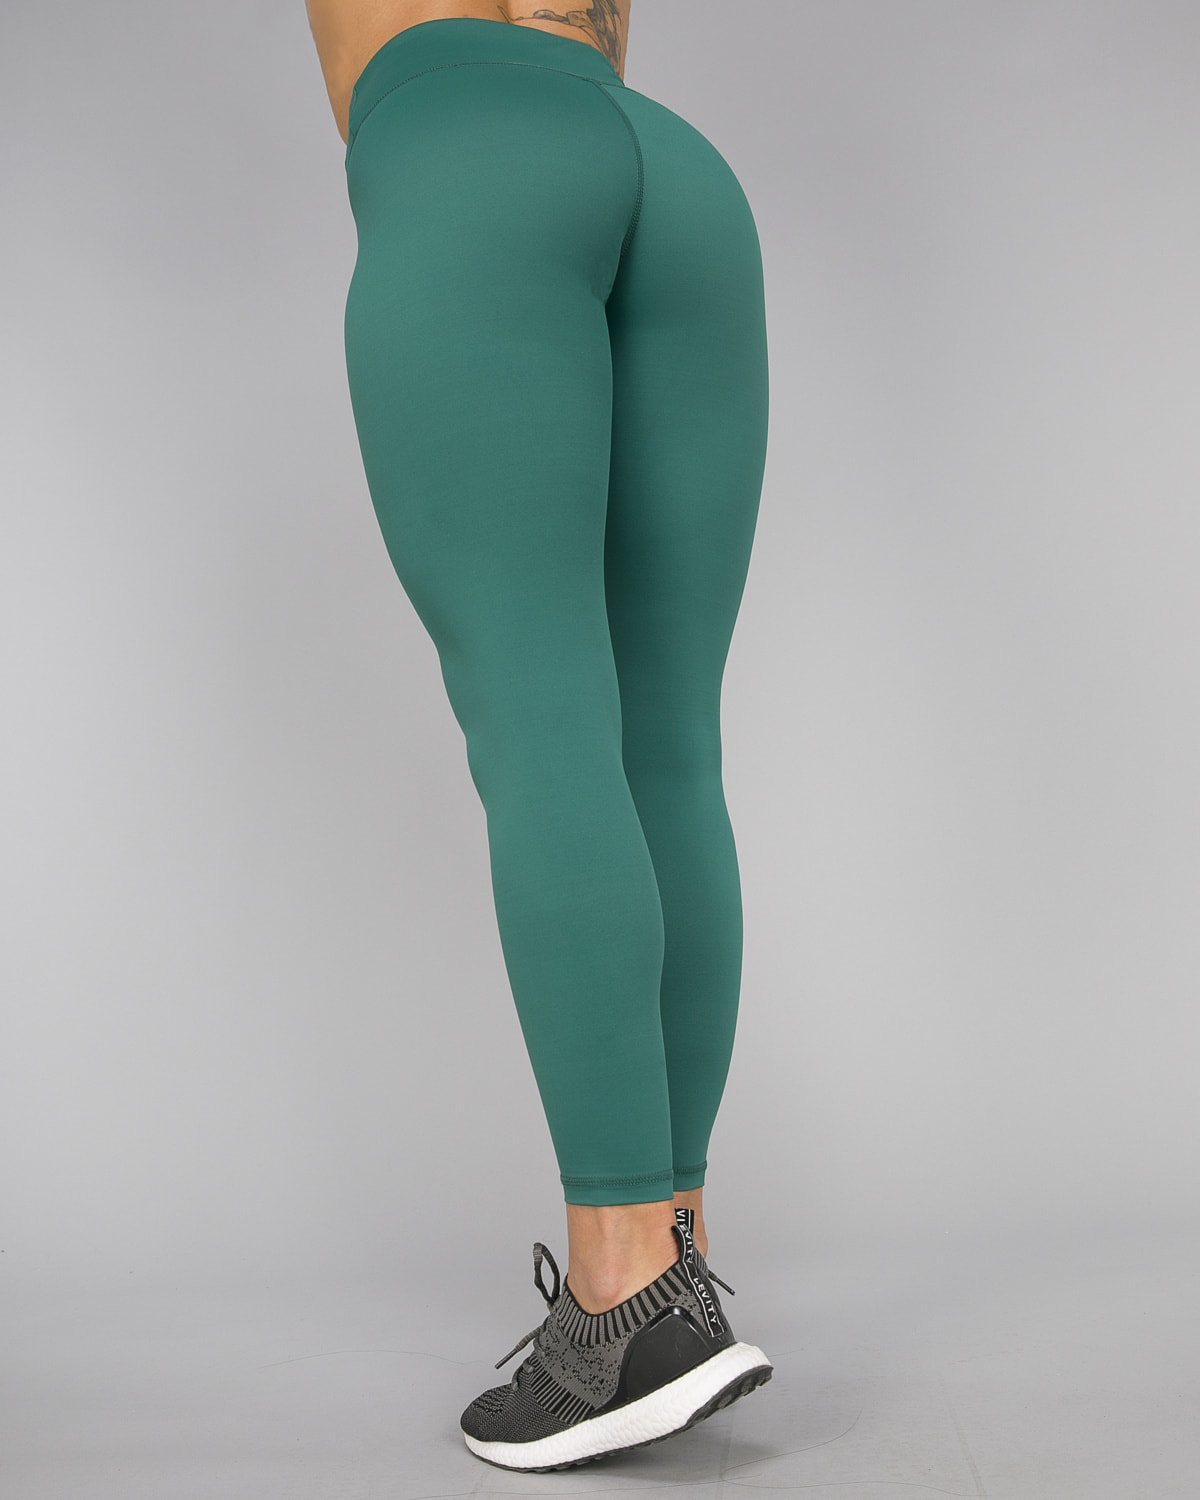 Workout Empire – With Confidence Shape Leggings – Emerald Green13